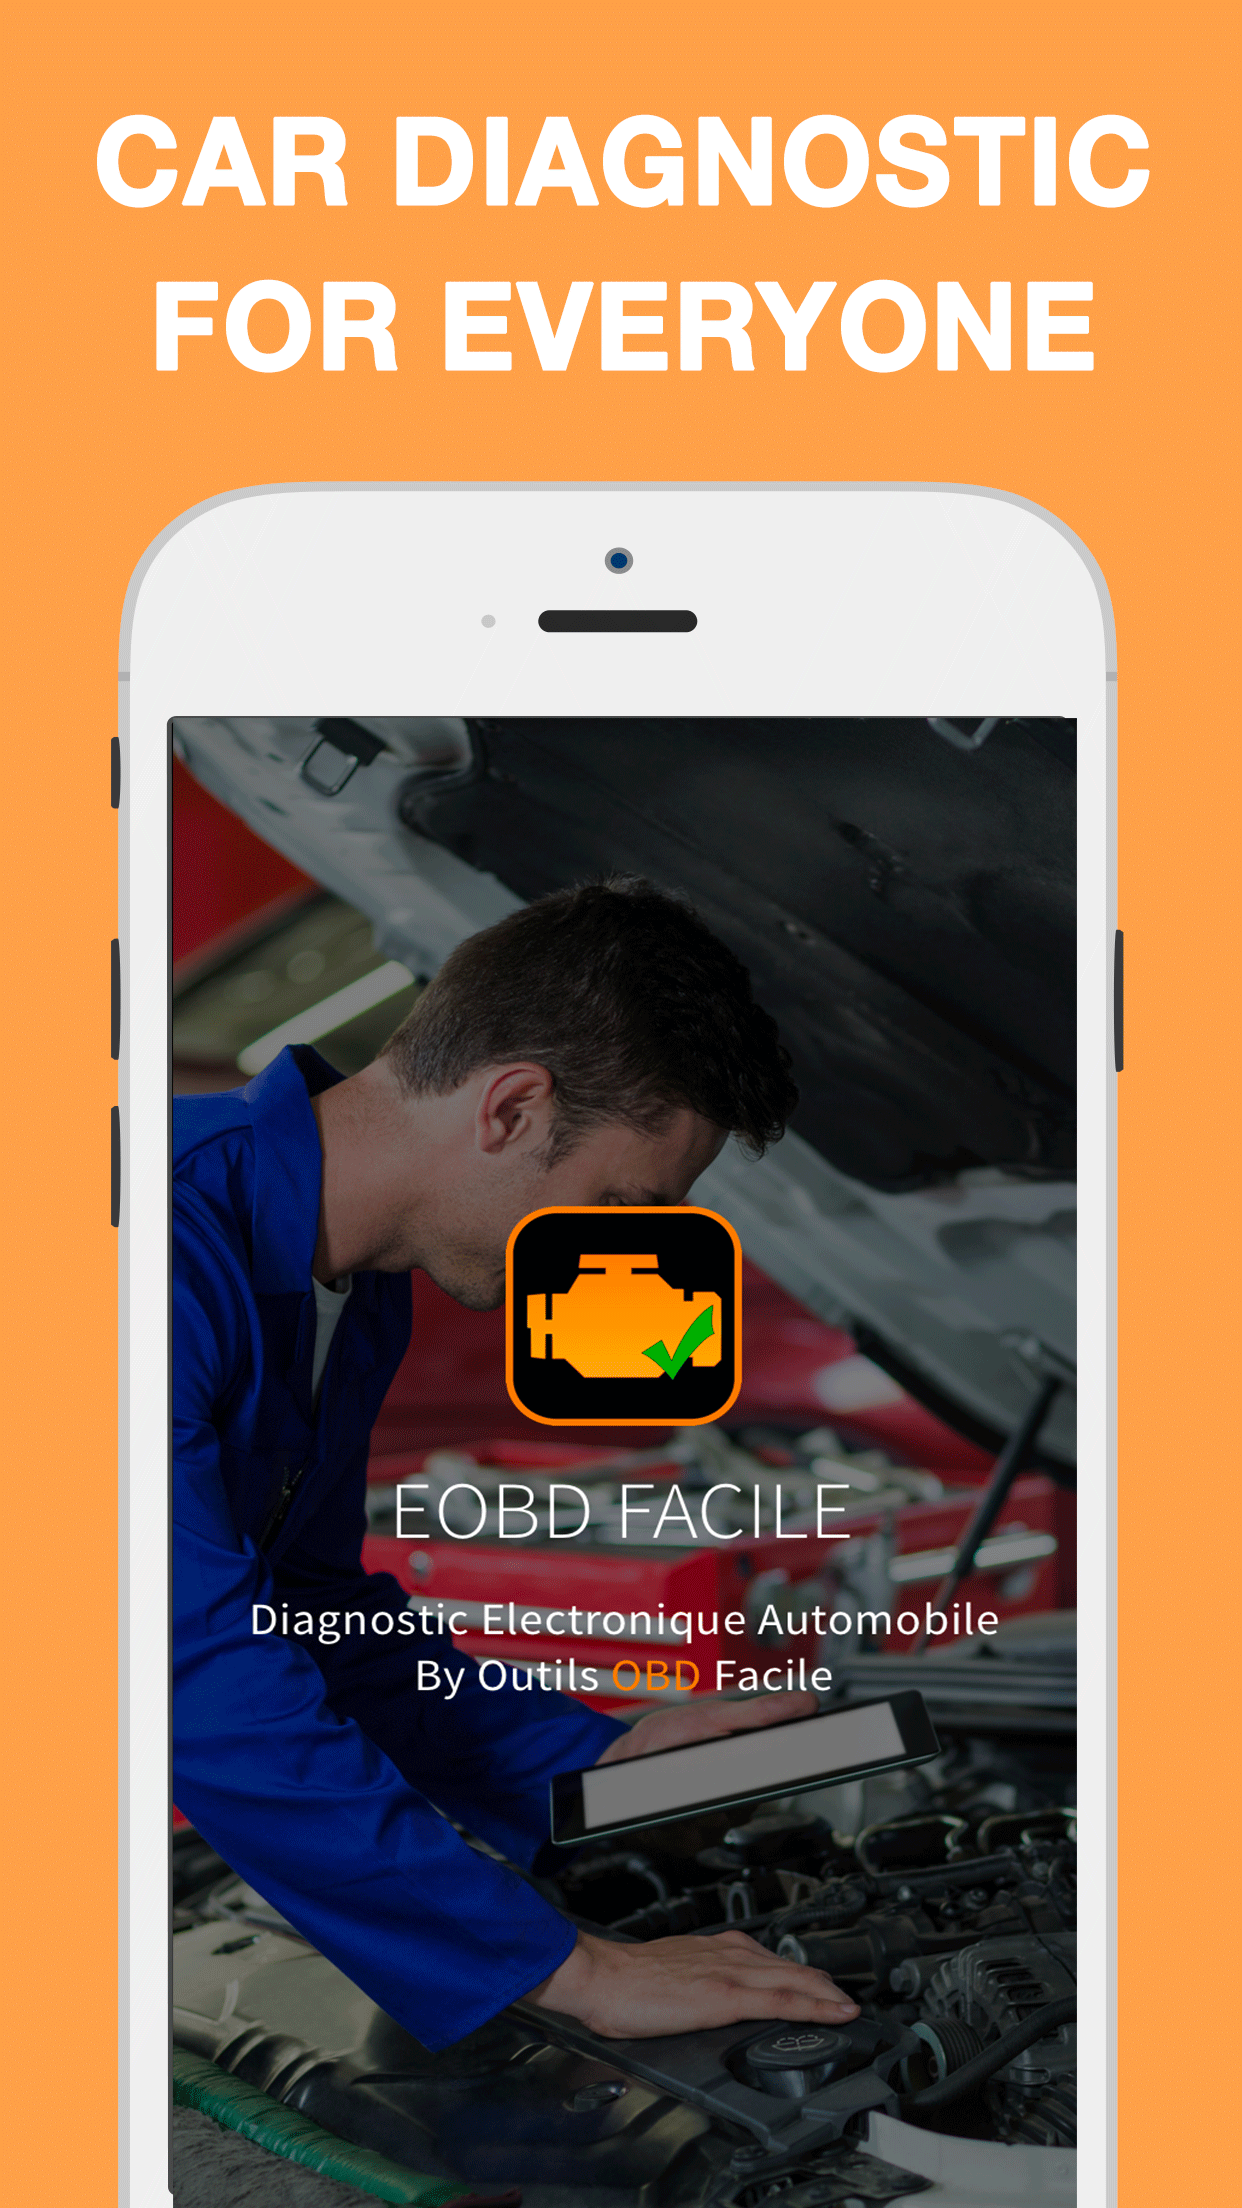 EOBD Facile - Car Diagnostic Screenshot